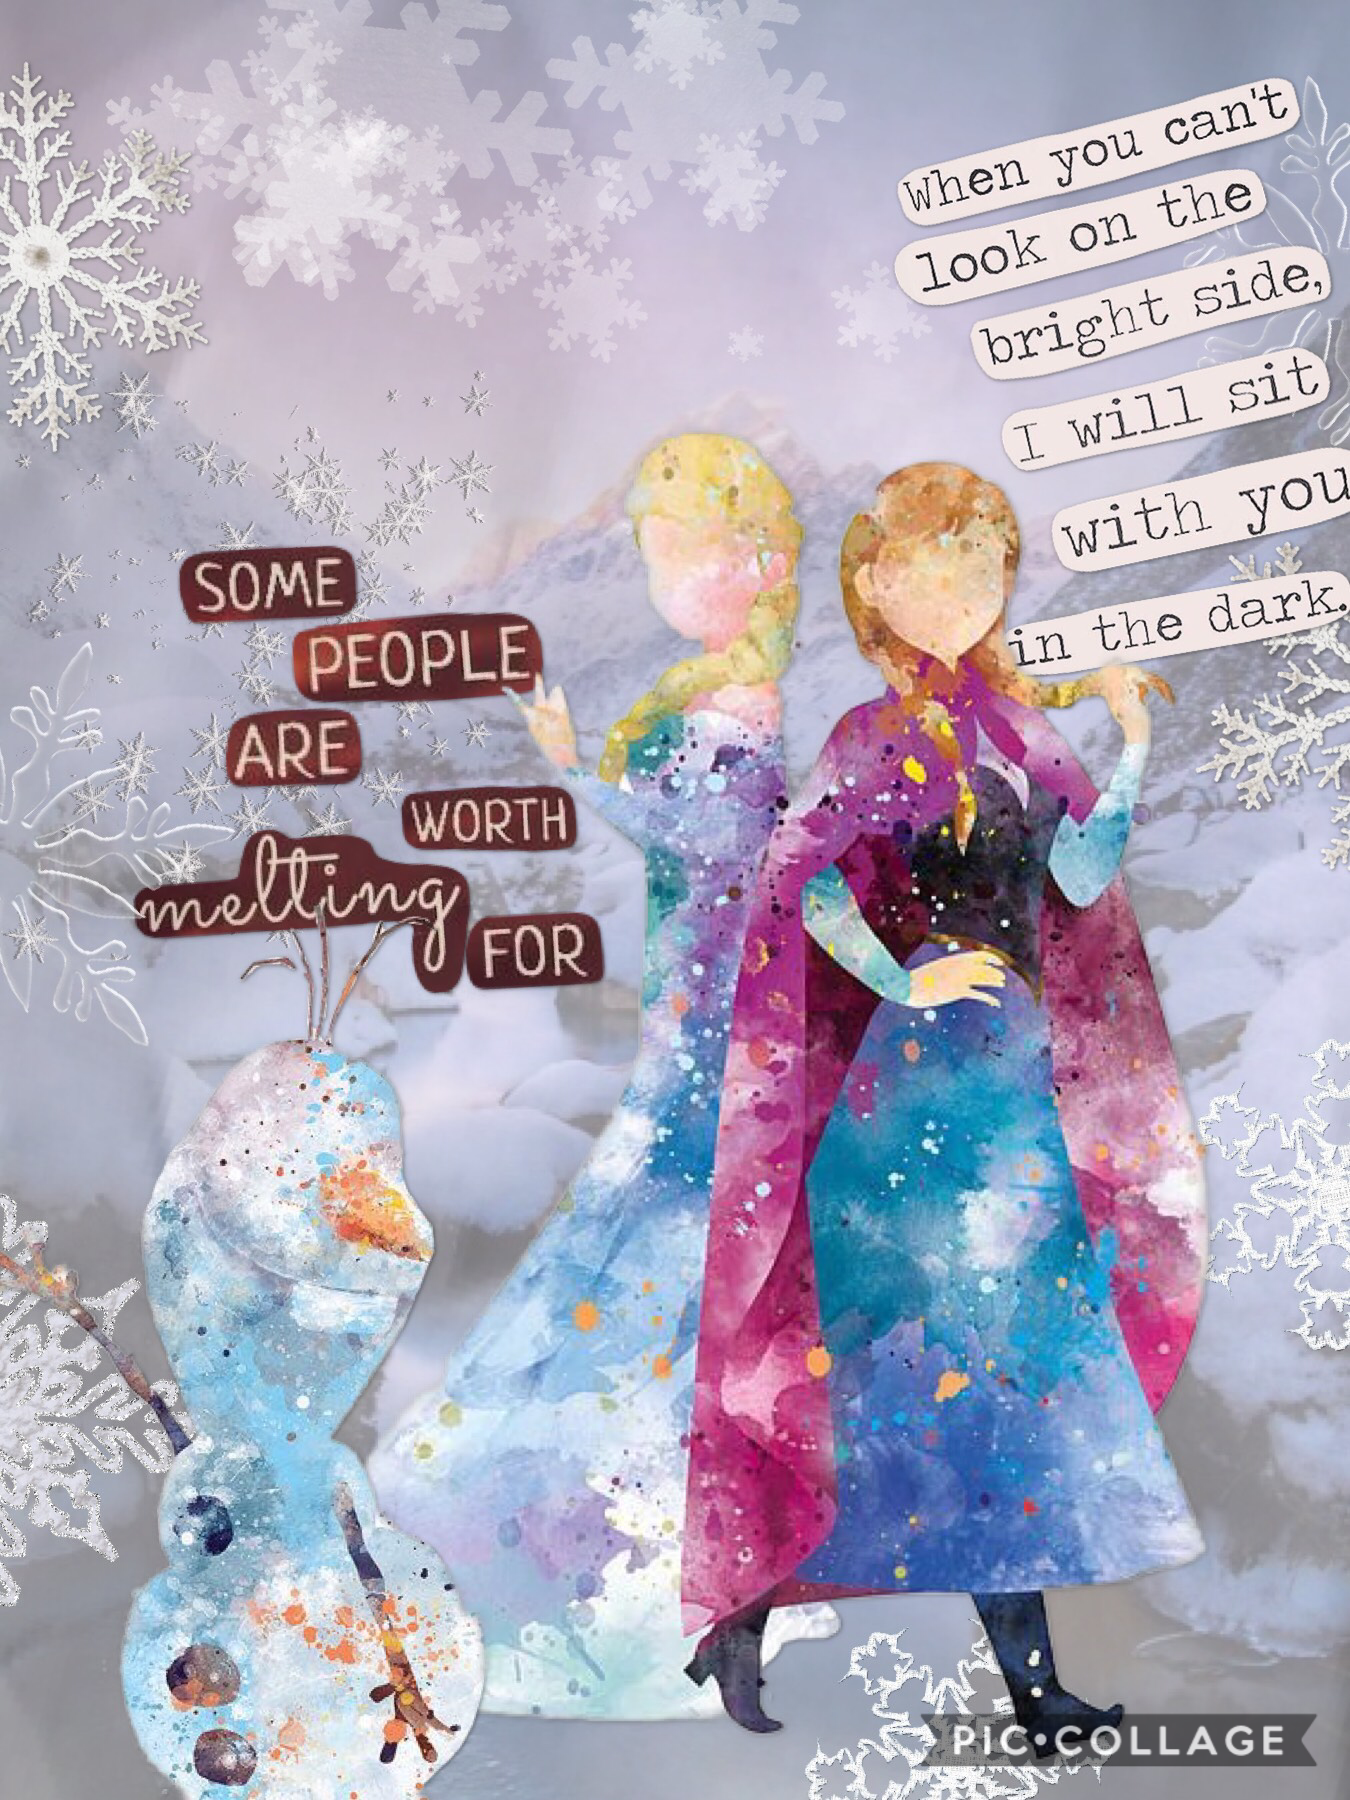 Find the people who will stick by you through thick and thin ⛄️ xoxo Pie